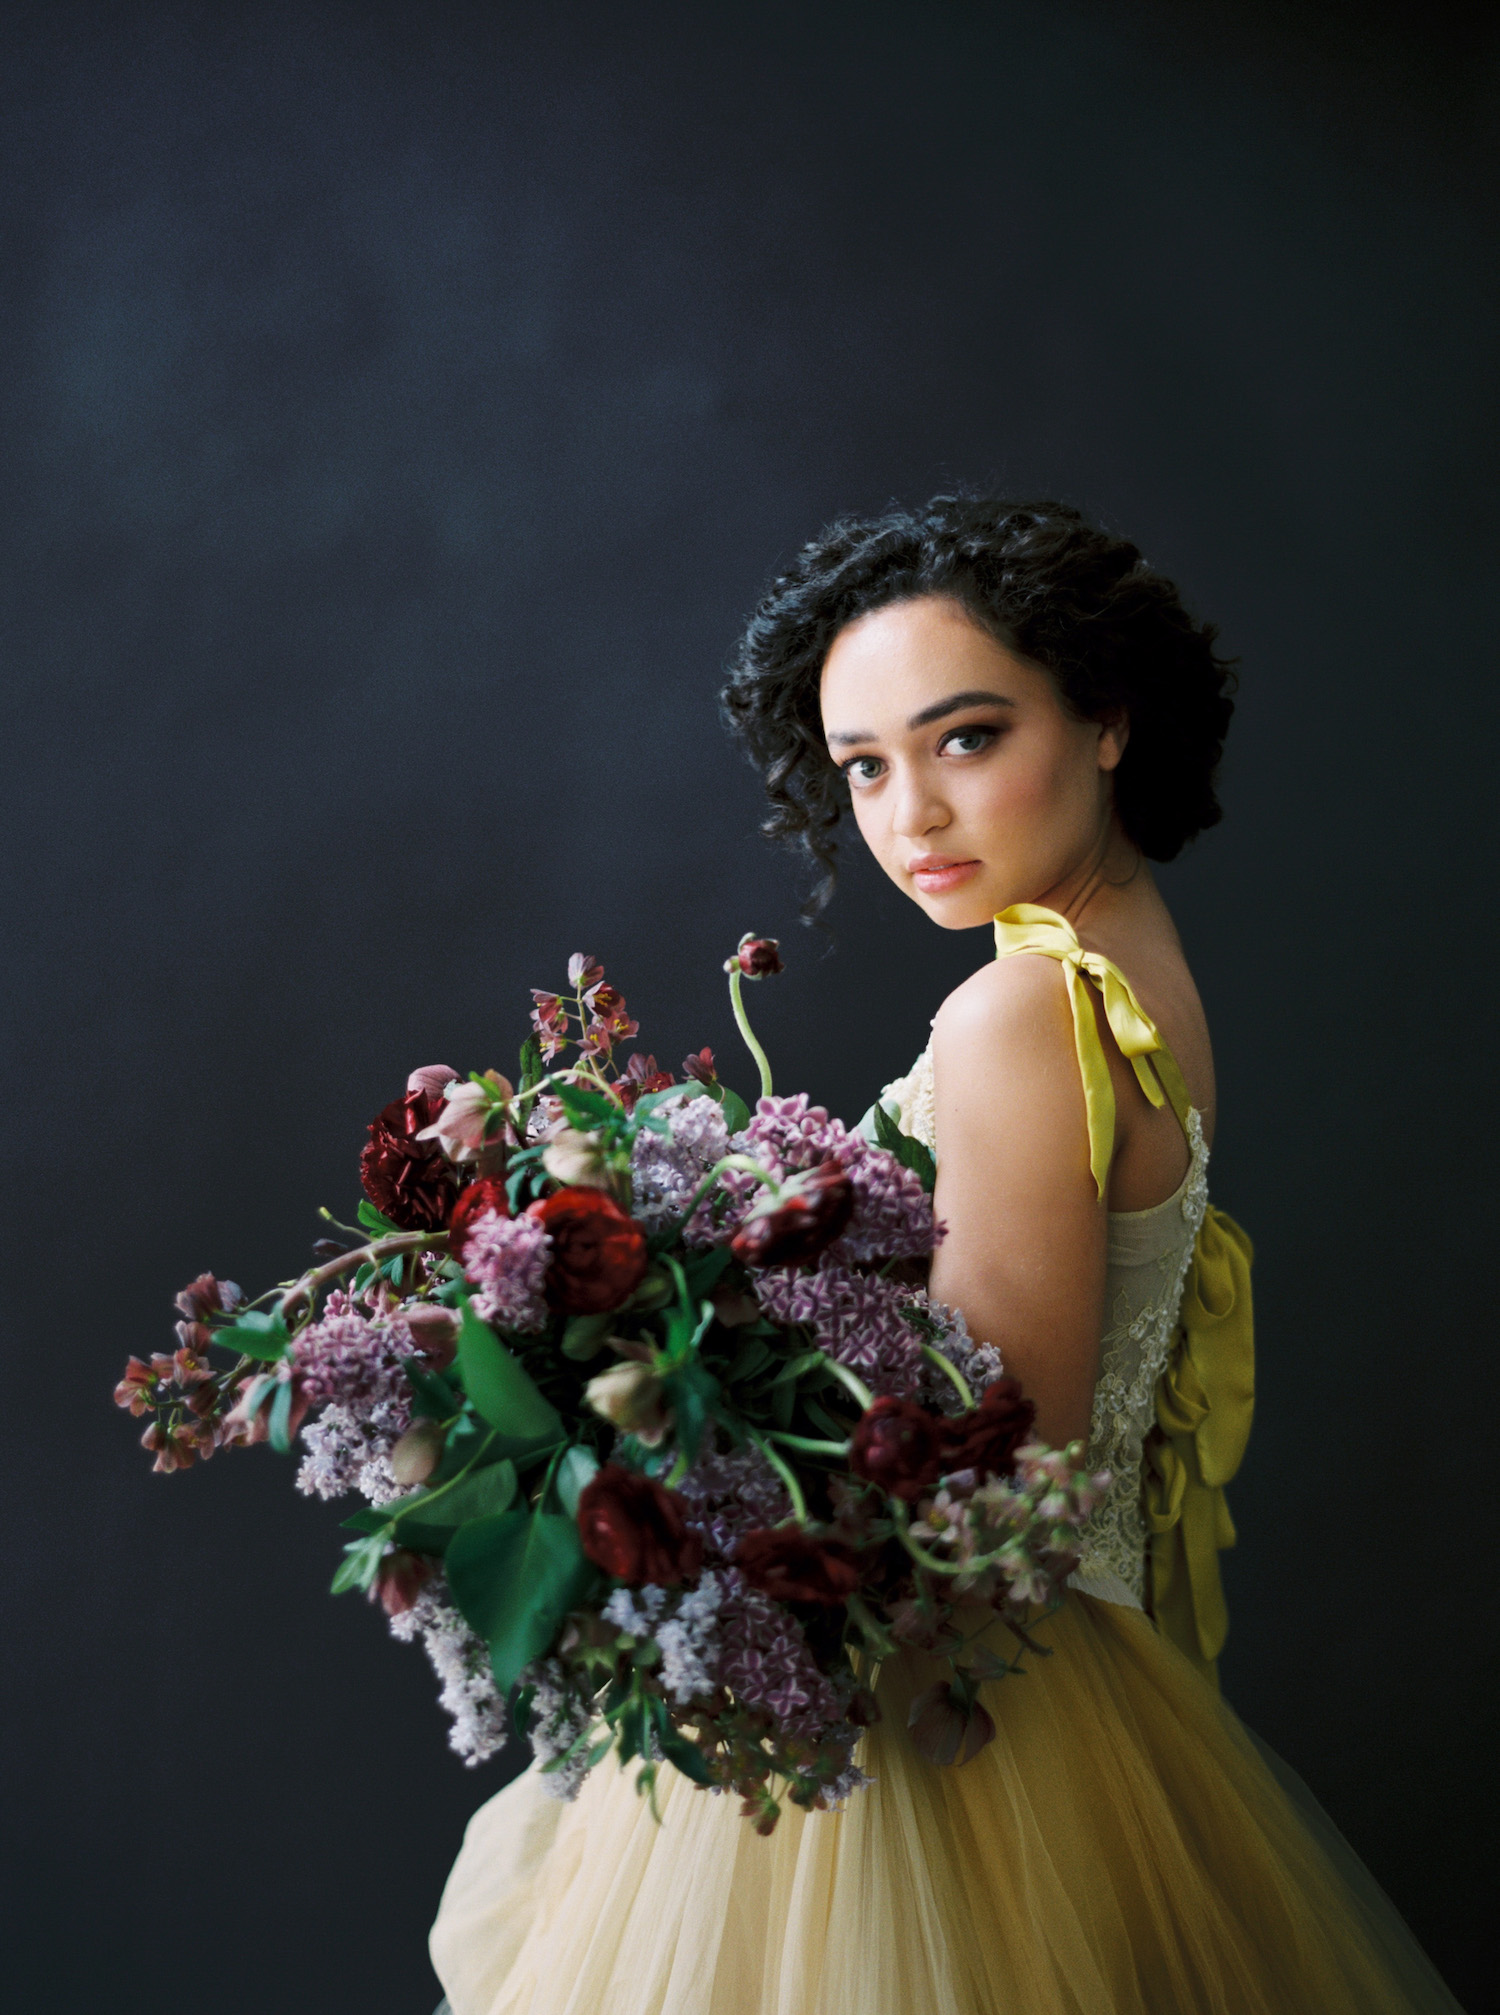 Wedding Style Shoot - model with dark coloured bouquet.